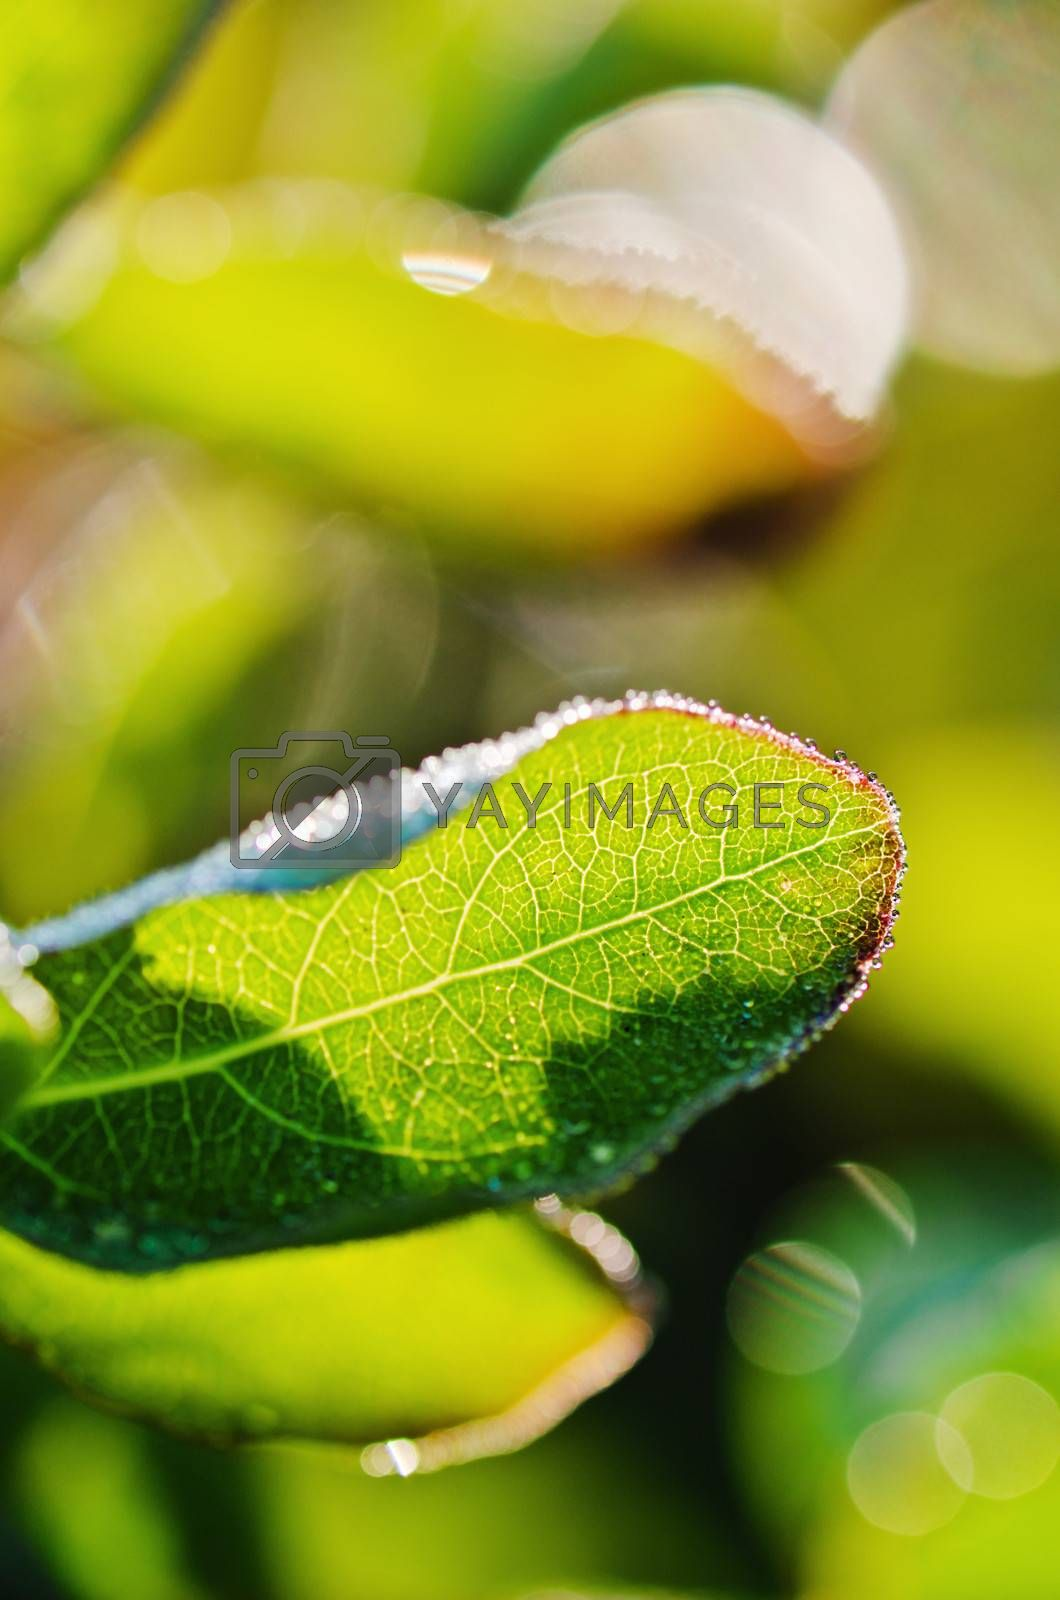 Morning dew drops on the leaves of plants, close-up